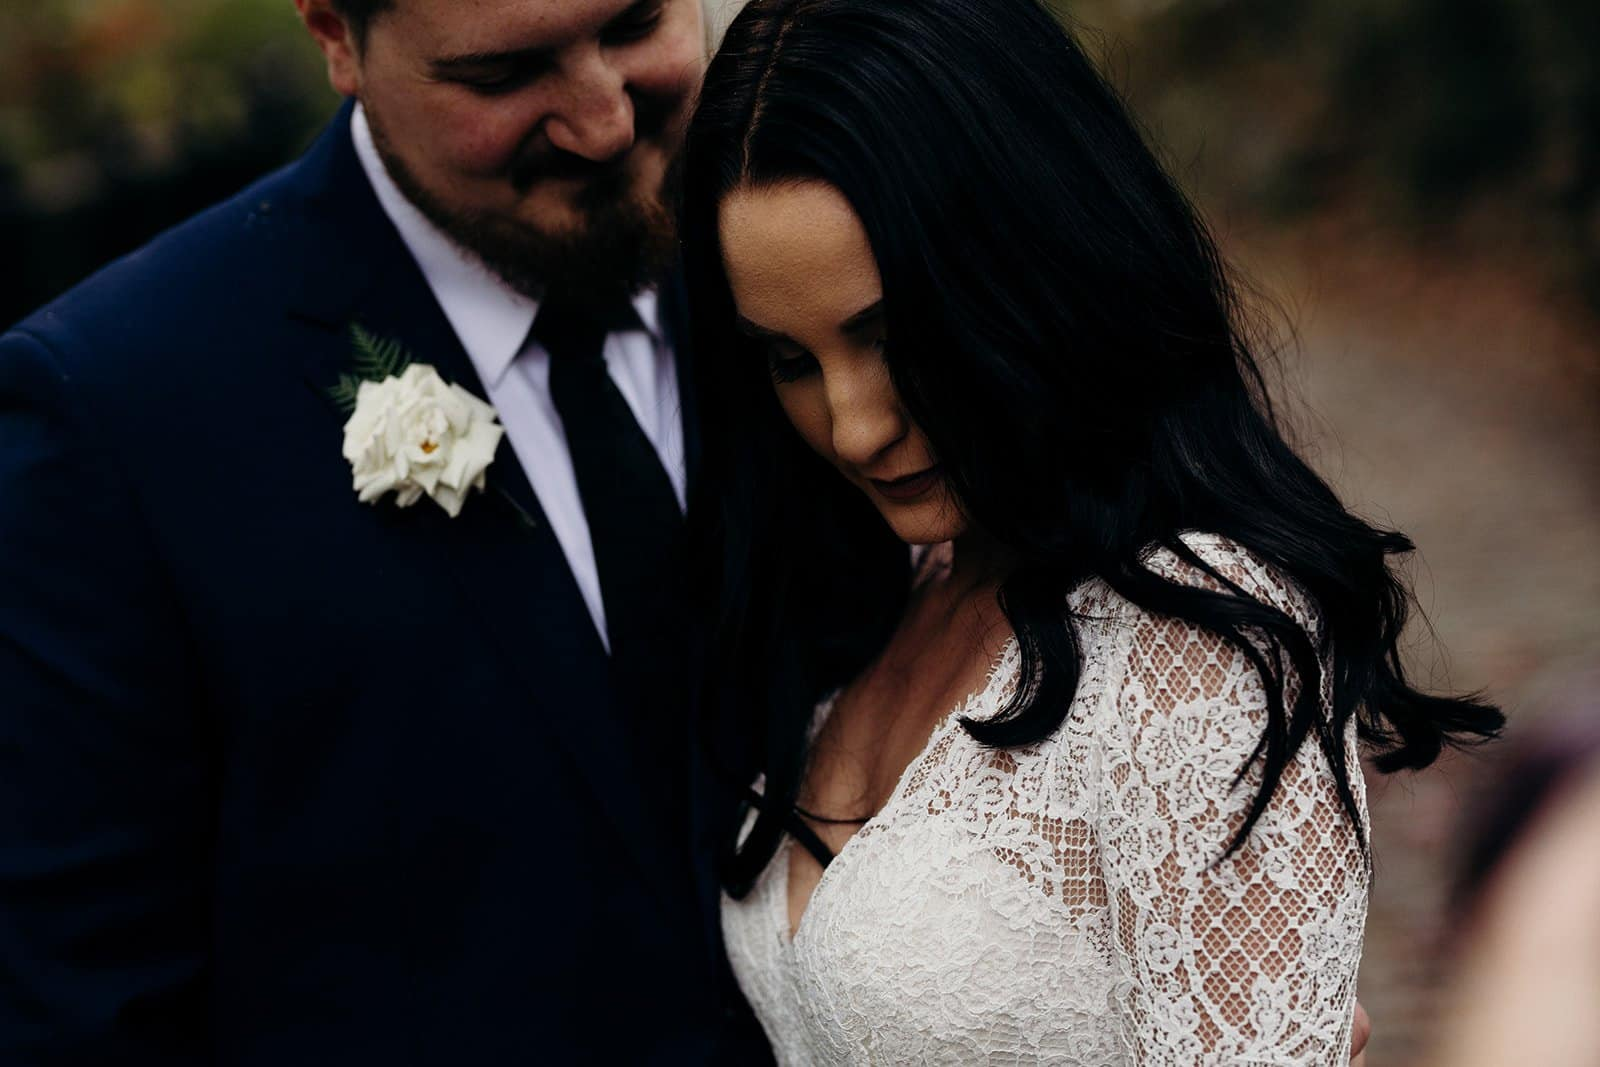 groom looks longingly at his bride